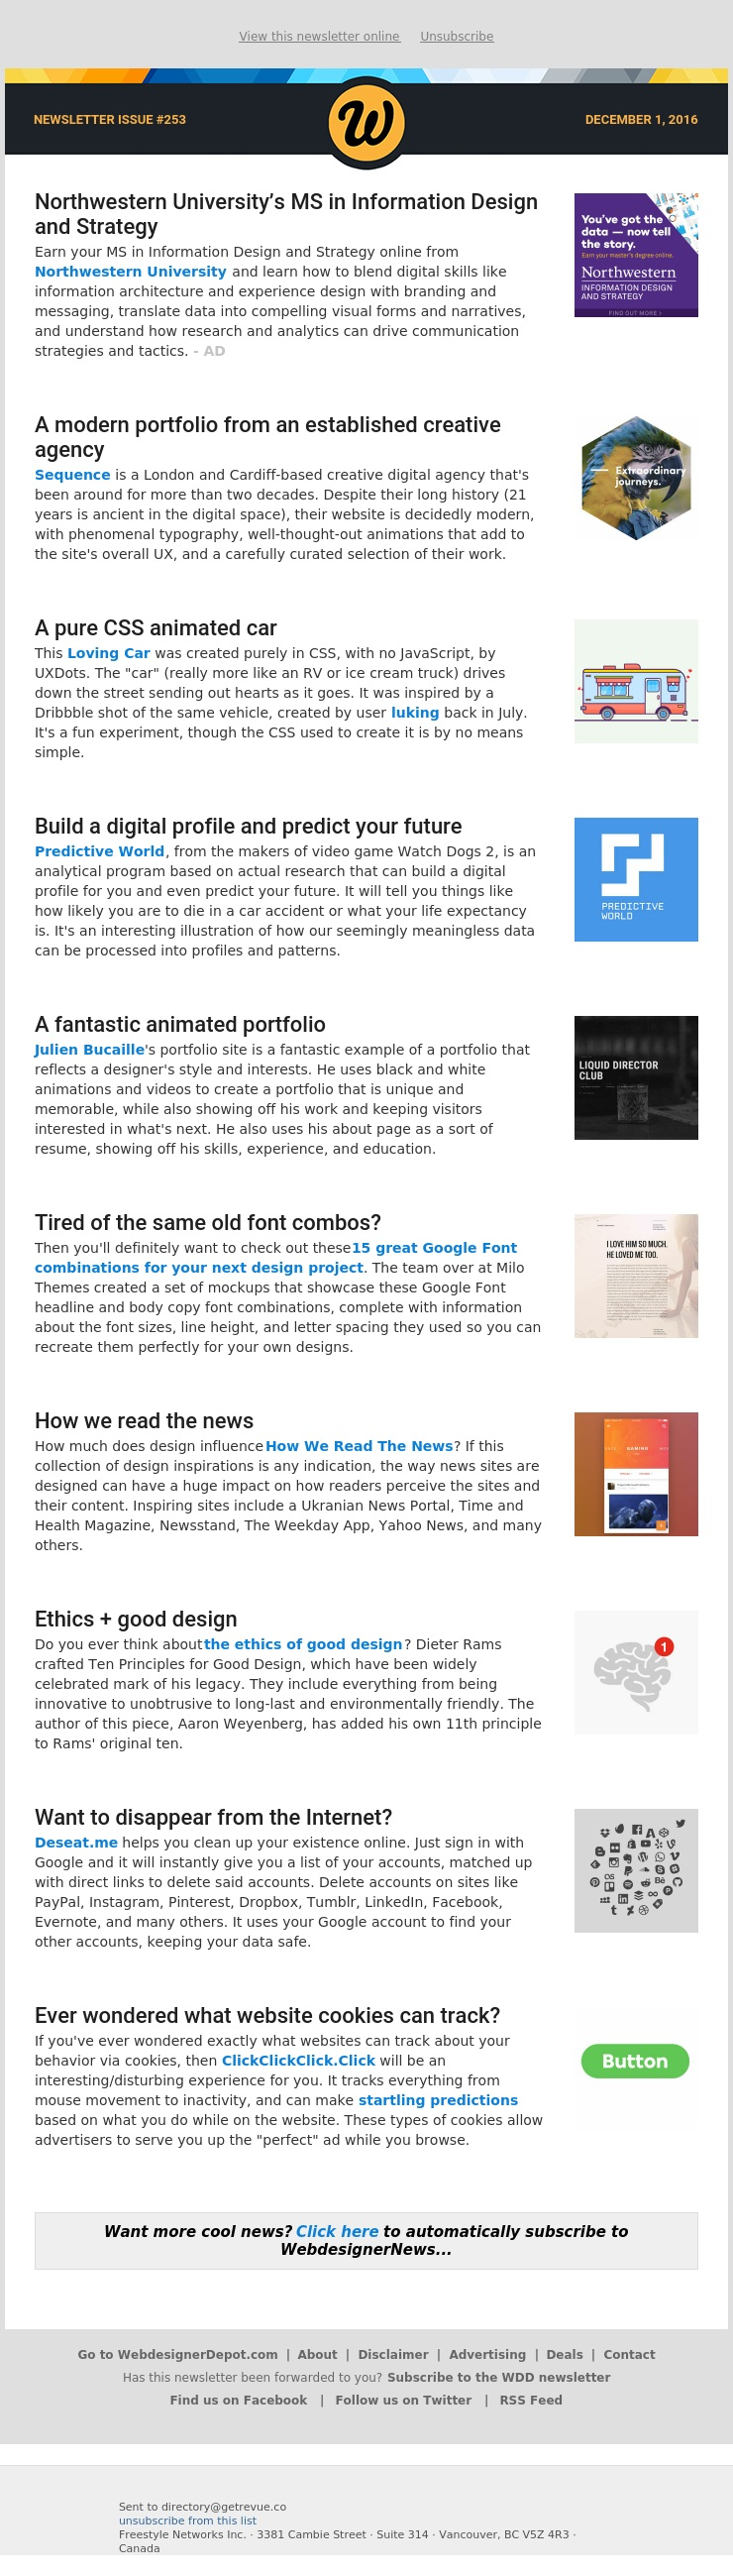 ✏ Issue #253: Google Font Combinations, Predictive World, Ethics of Good Design, Deseat.me and more...